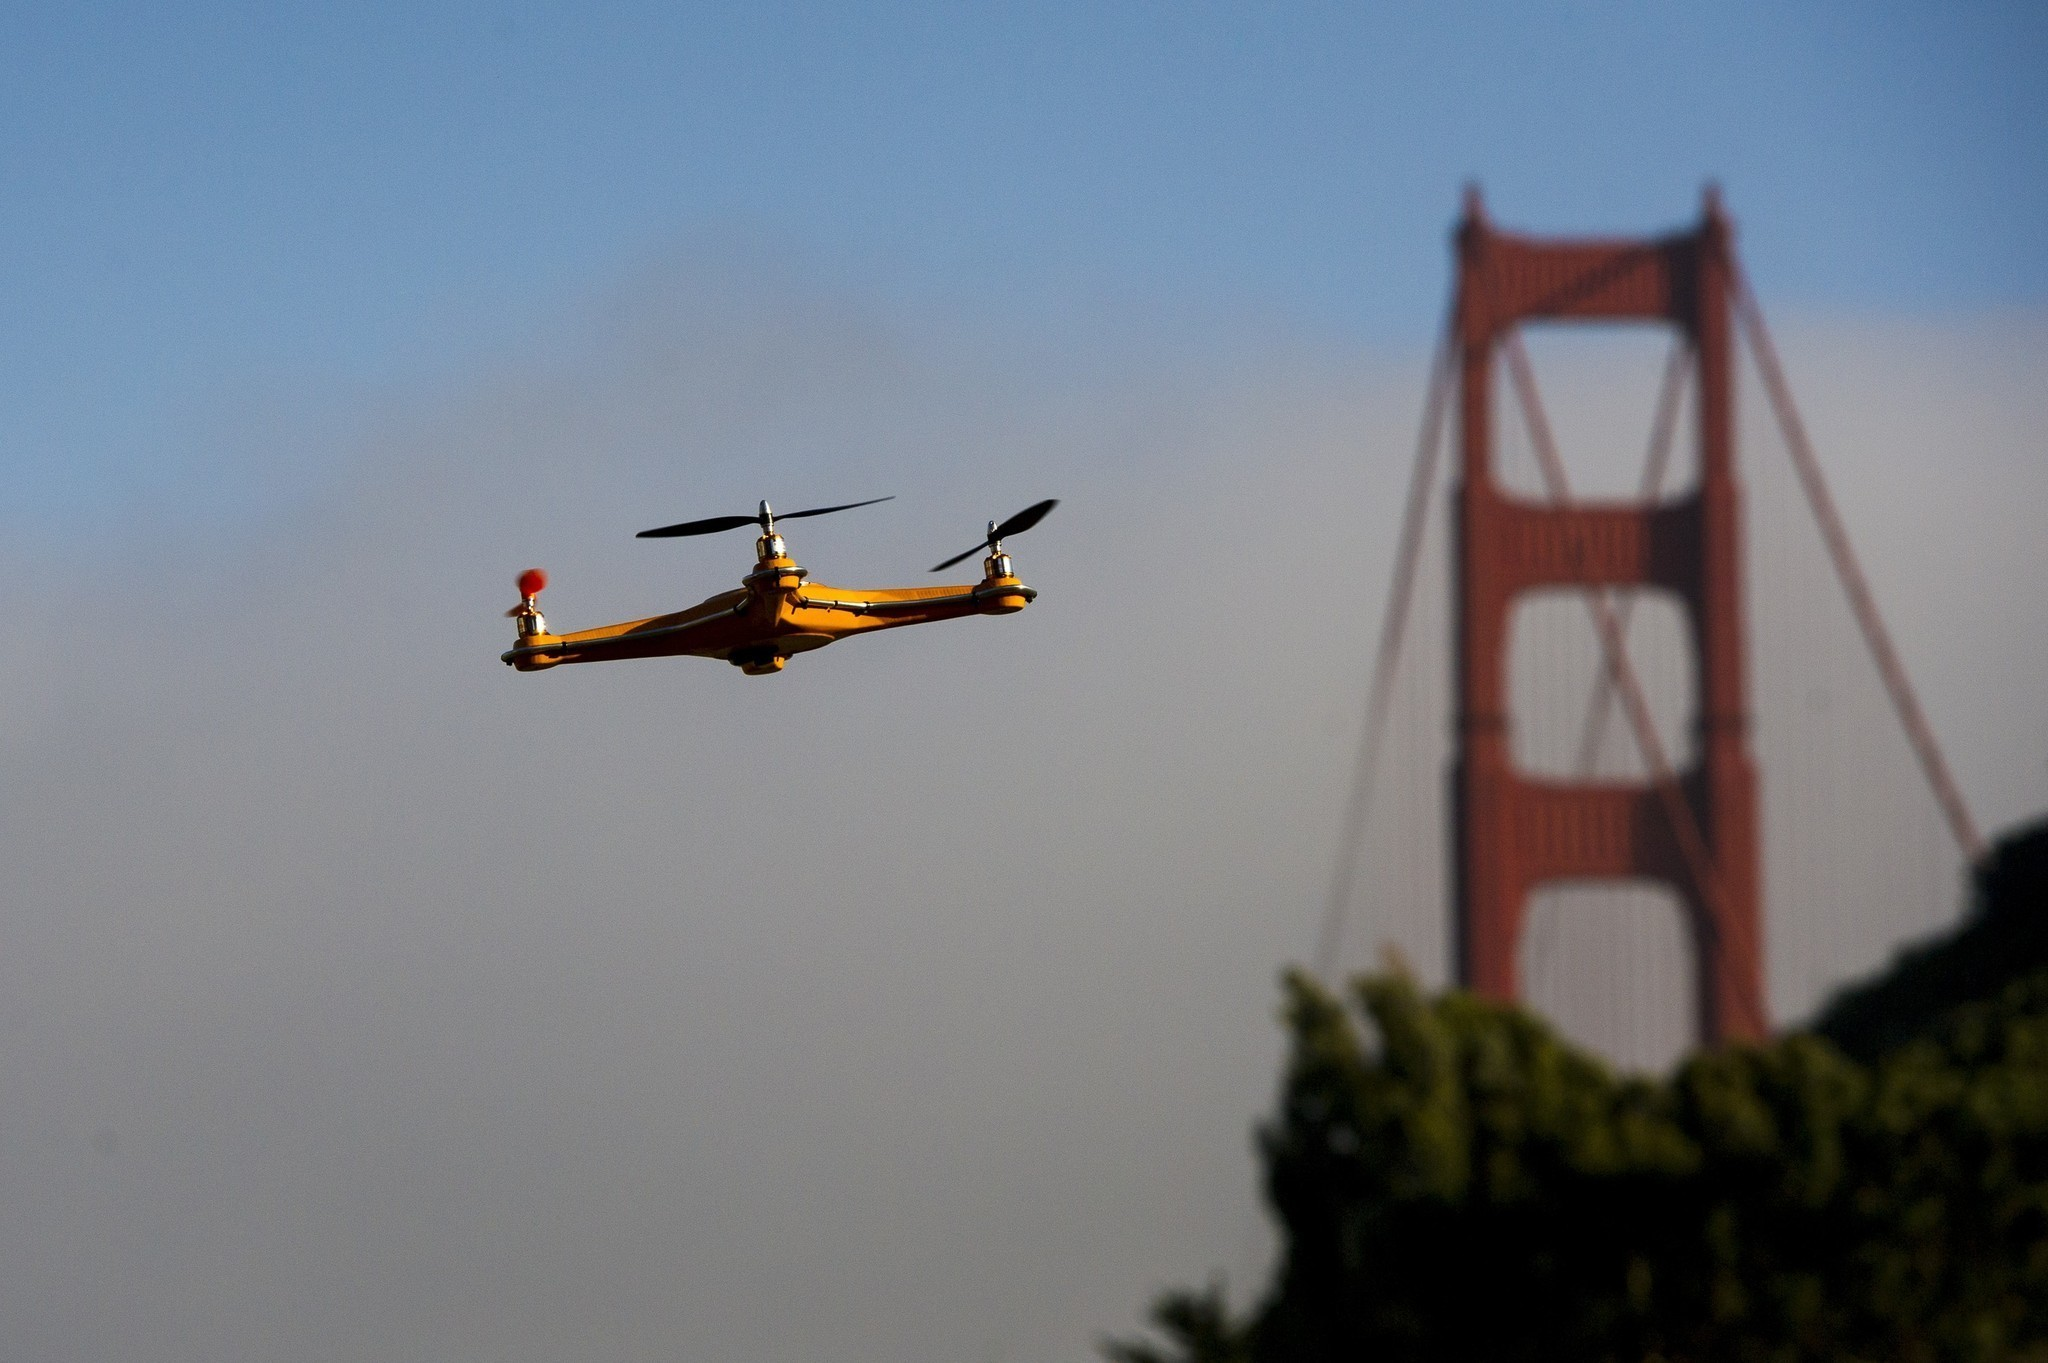 Washington state goes in circles over drone regulations - Hoy